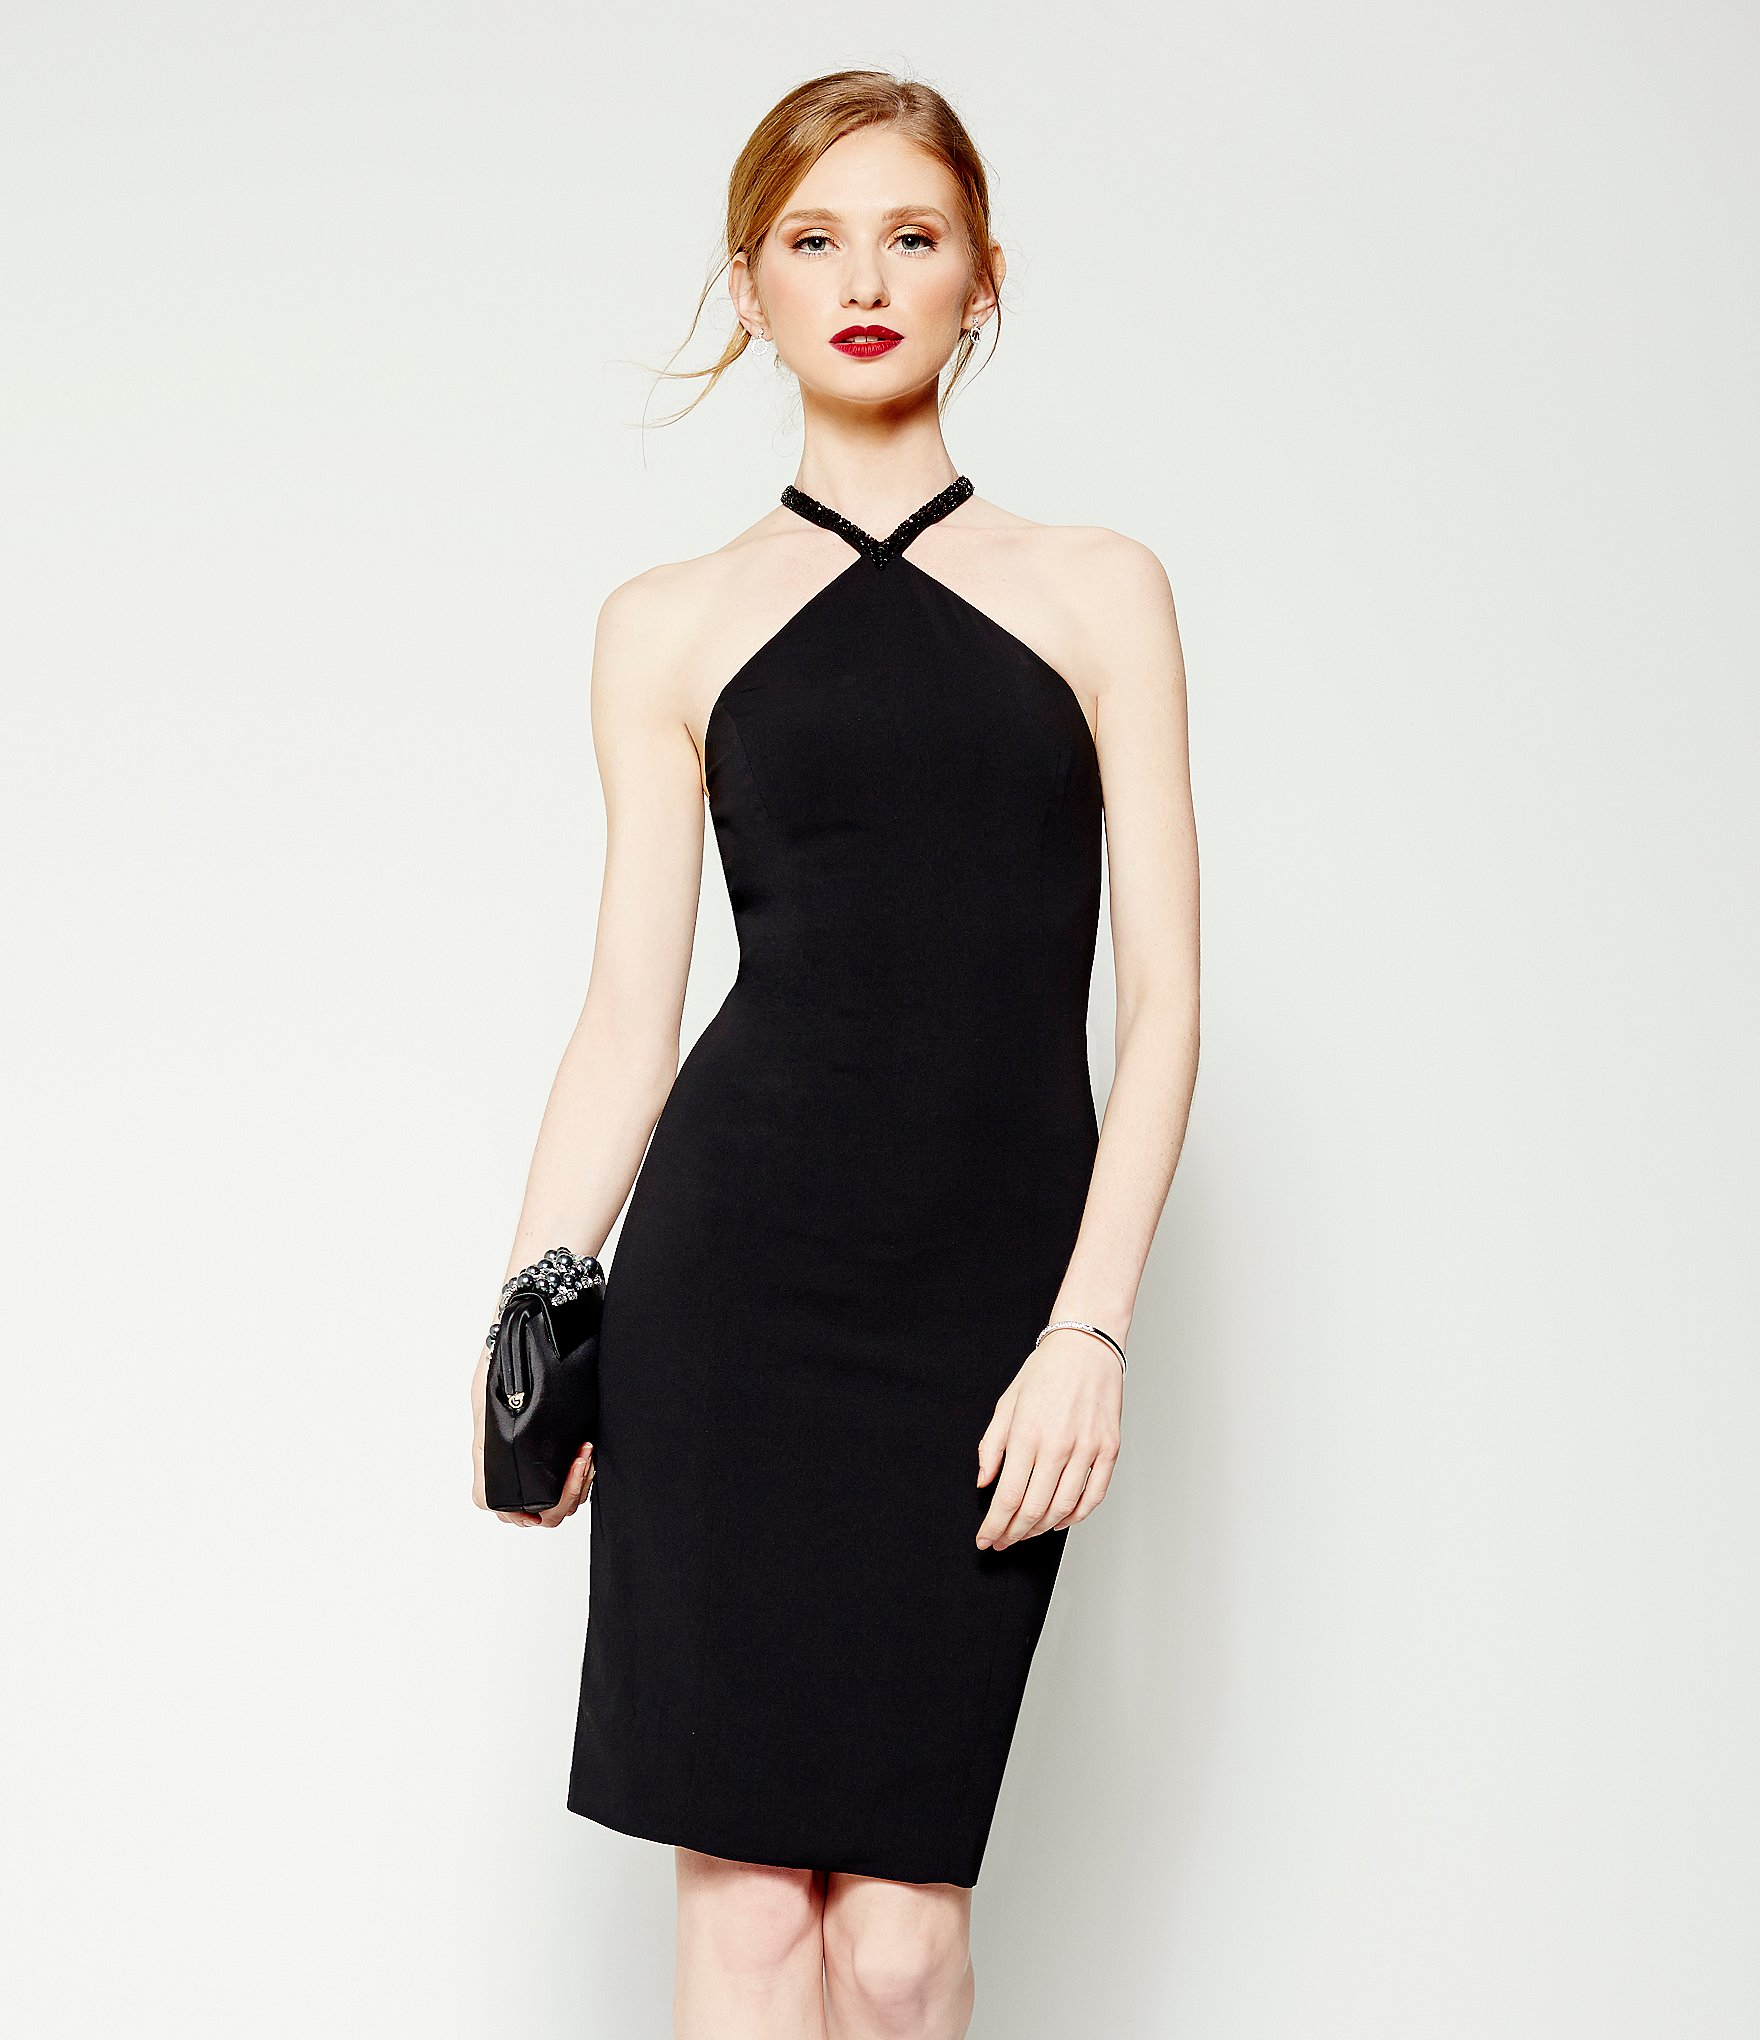 Collection Dillards Dresses Formal Pictures - The Fashions Of Paradise